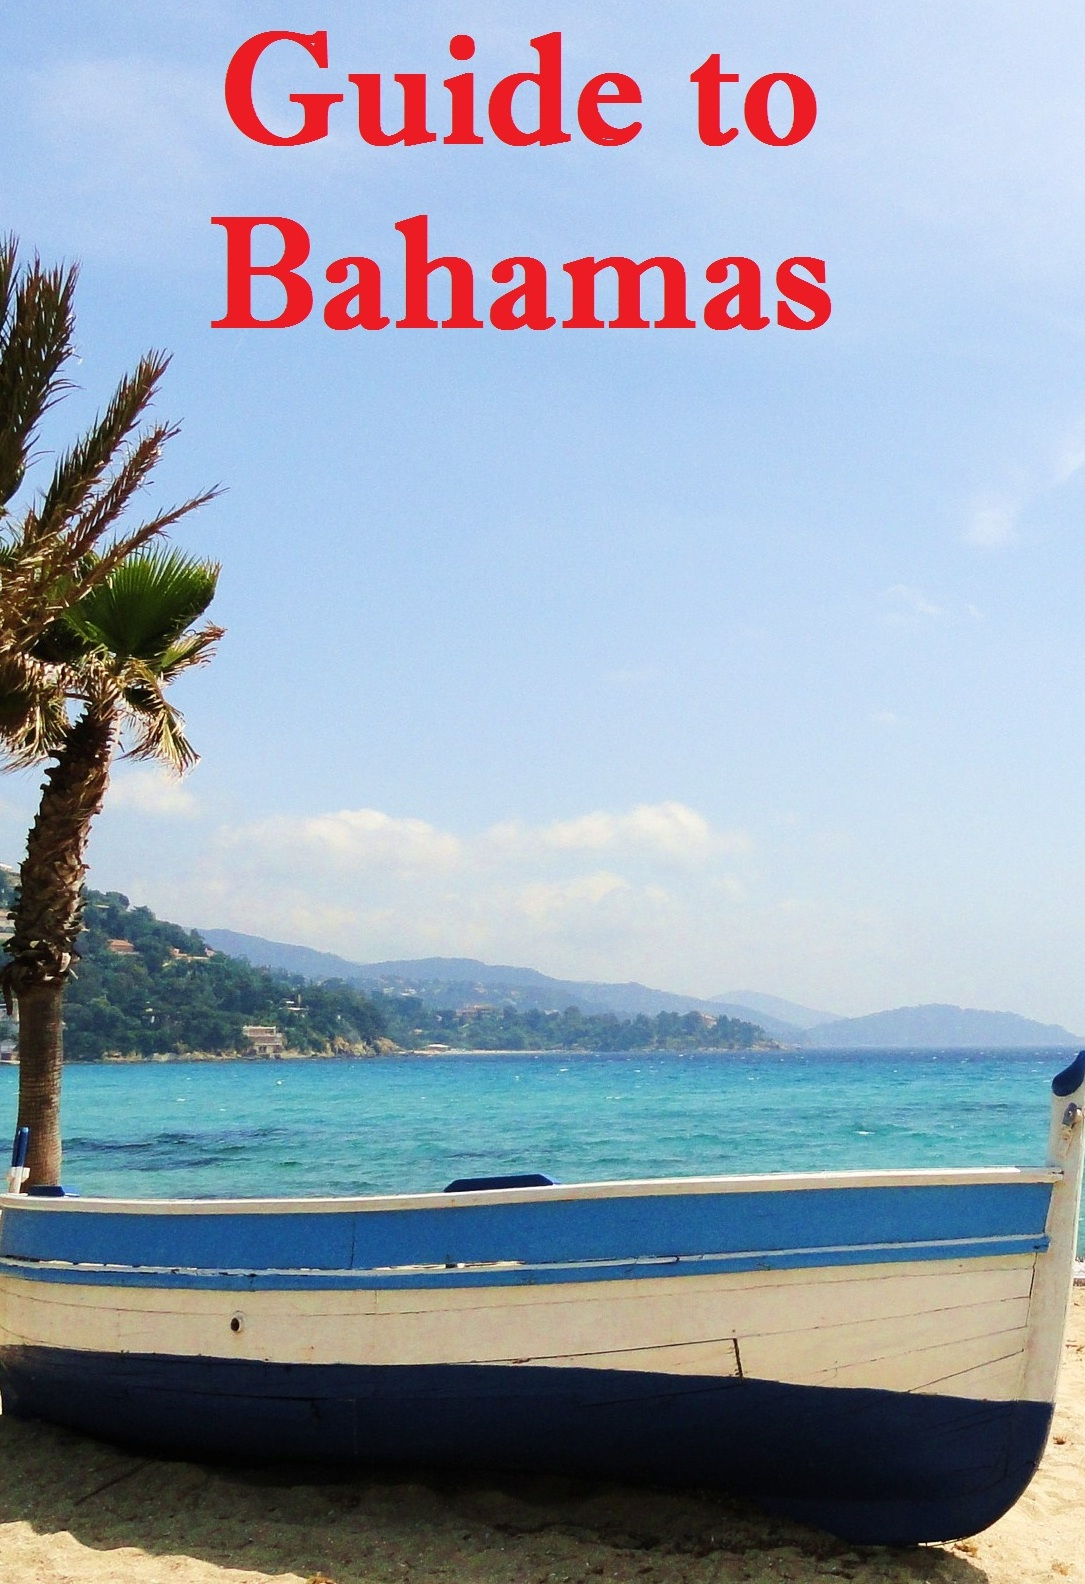 Guide to Bahamas